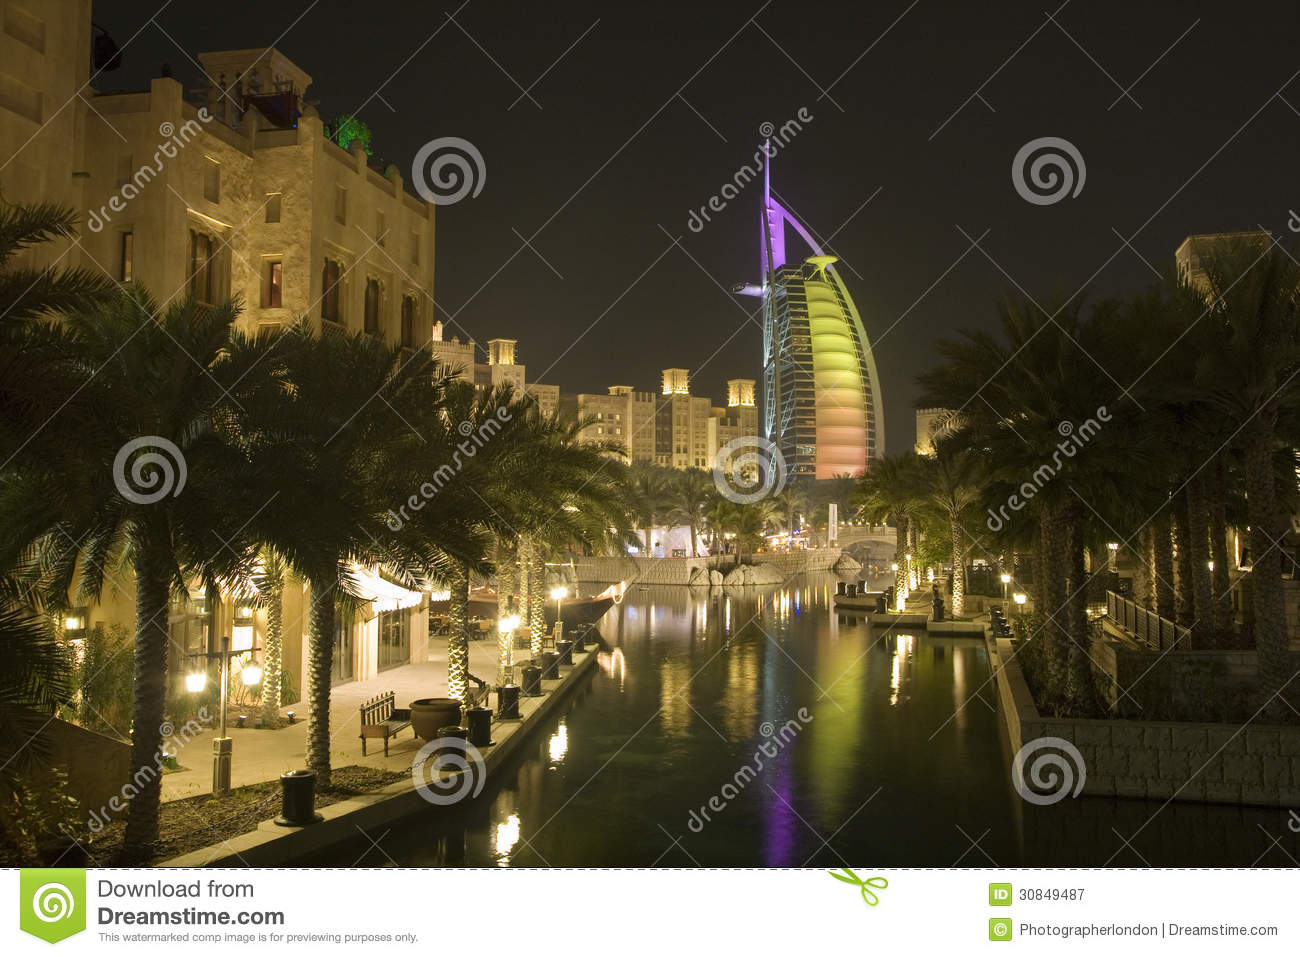 Burj al arab dubai stock image 28079863 for Dearest hotel in dubai